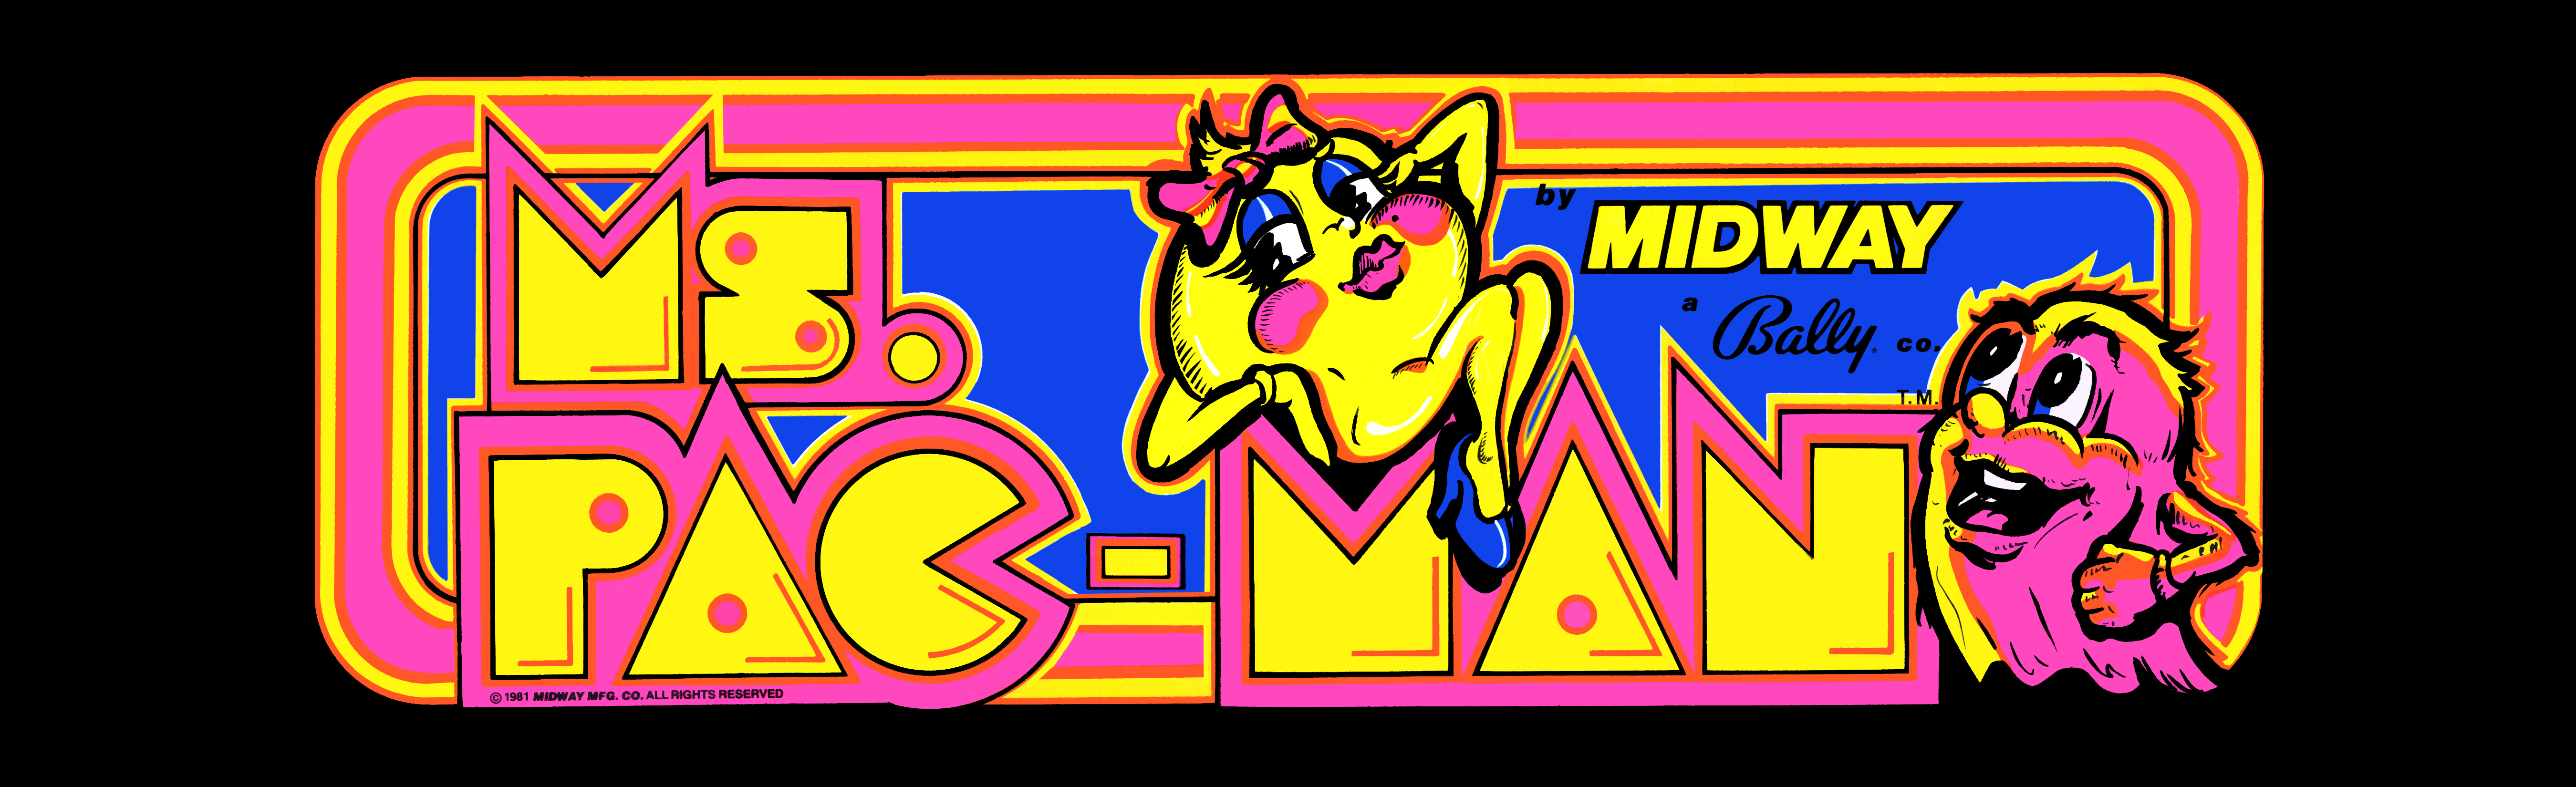 Ms  Pac man HD Wallpapers   Backgrounds   Wallpaper Abyss